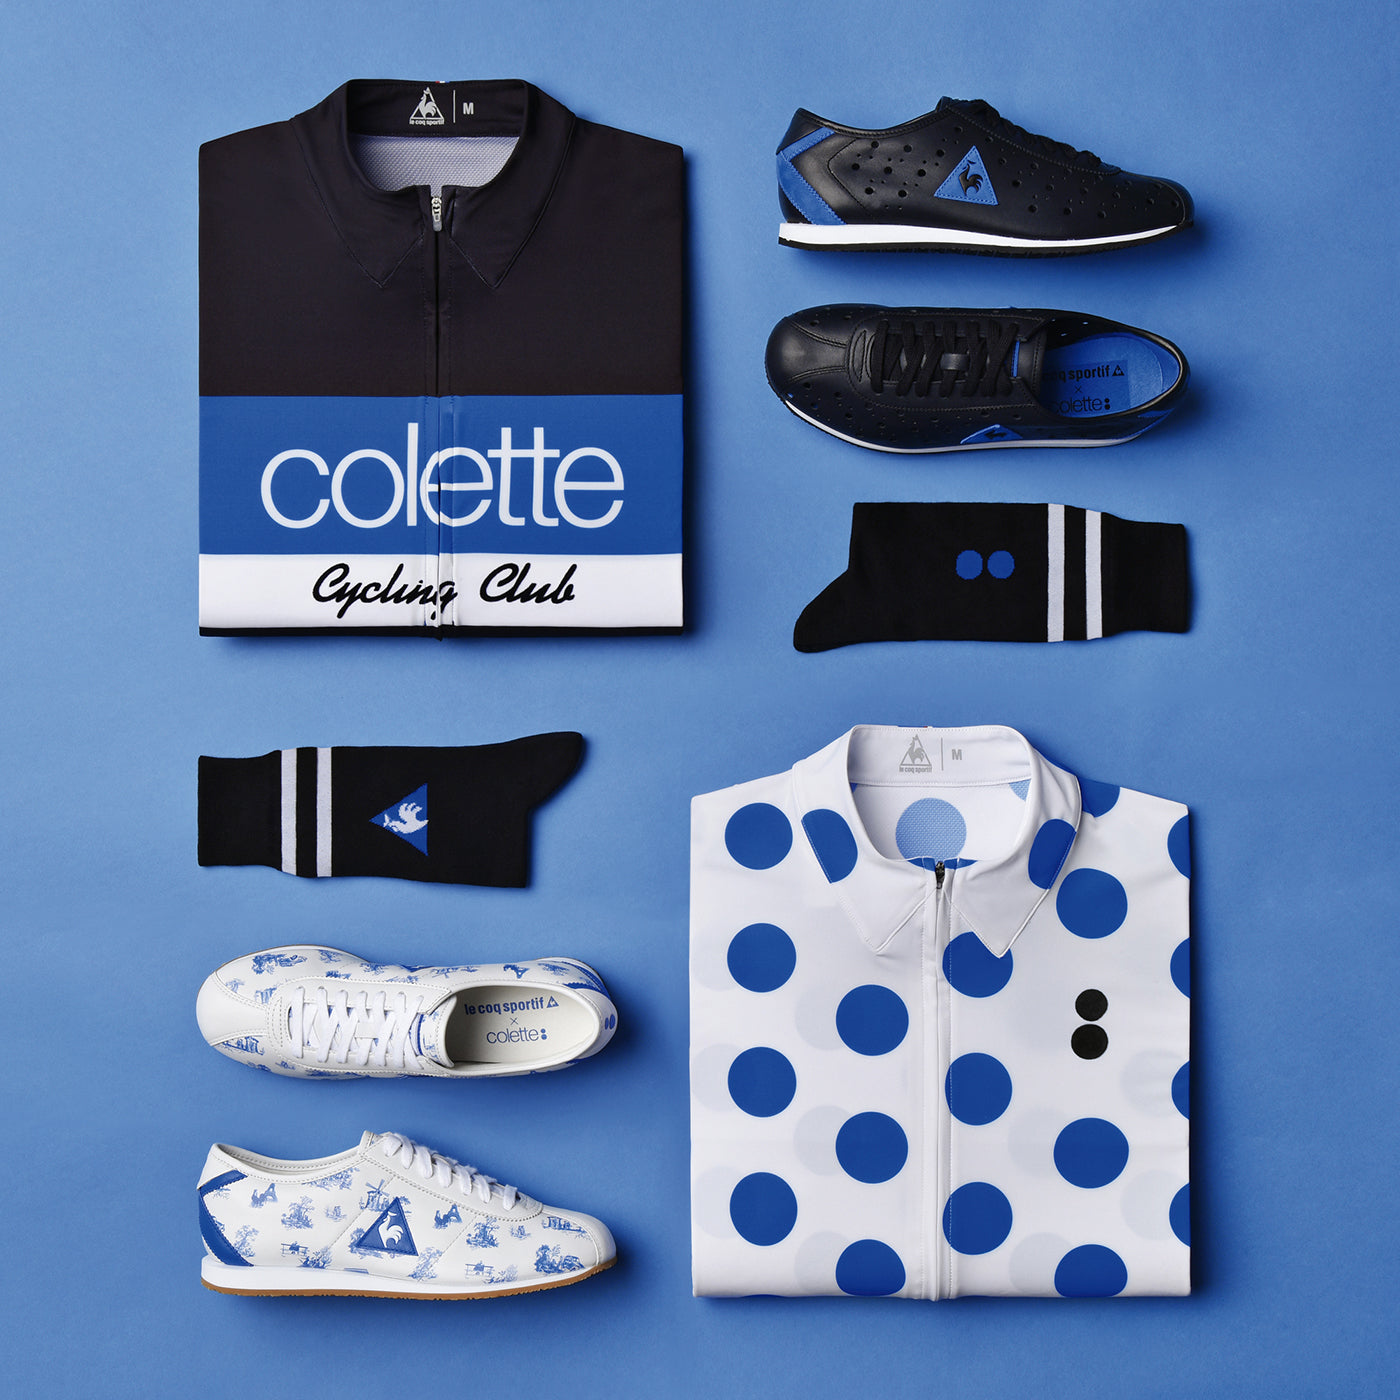 Products from the brand collaboration of Coq Sportif and colette. (Photo: Thomas Welch)